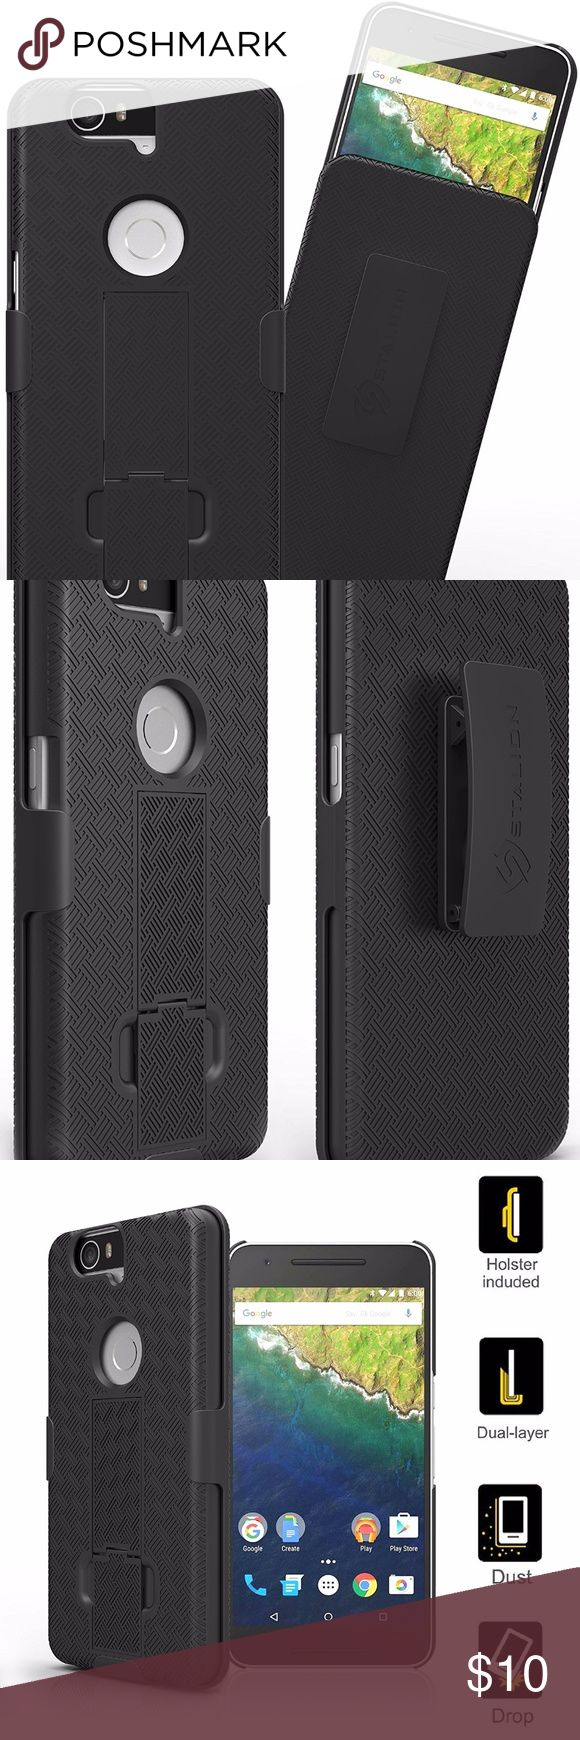 Nexus 6P Case Nexus 6P Case: Stalion Secure Shell & Belt Clip Holster Combo with Kickstand for Huawei Google Nexus 6P (Jet Black) 180° Rotating Locking Swivel  box #1 Accessories Phone Cases